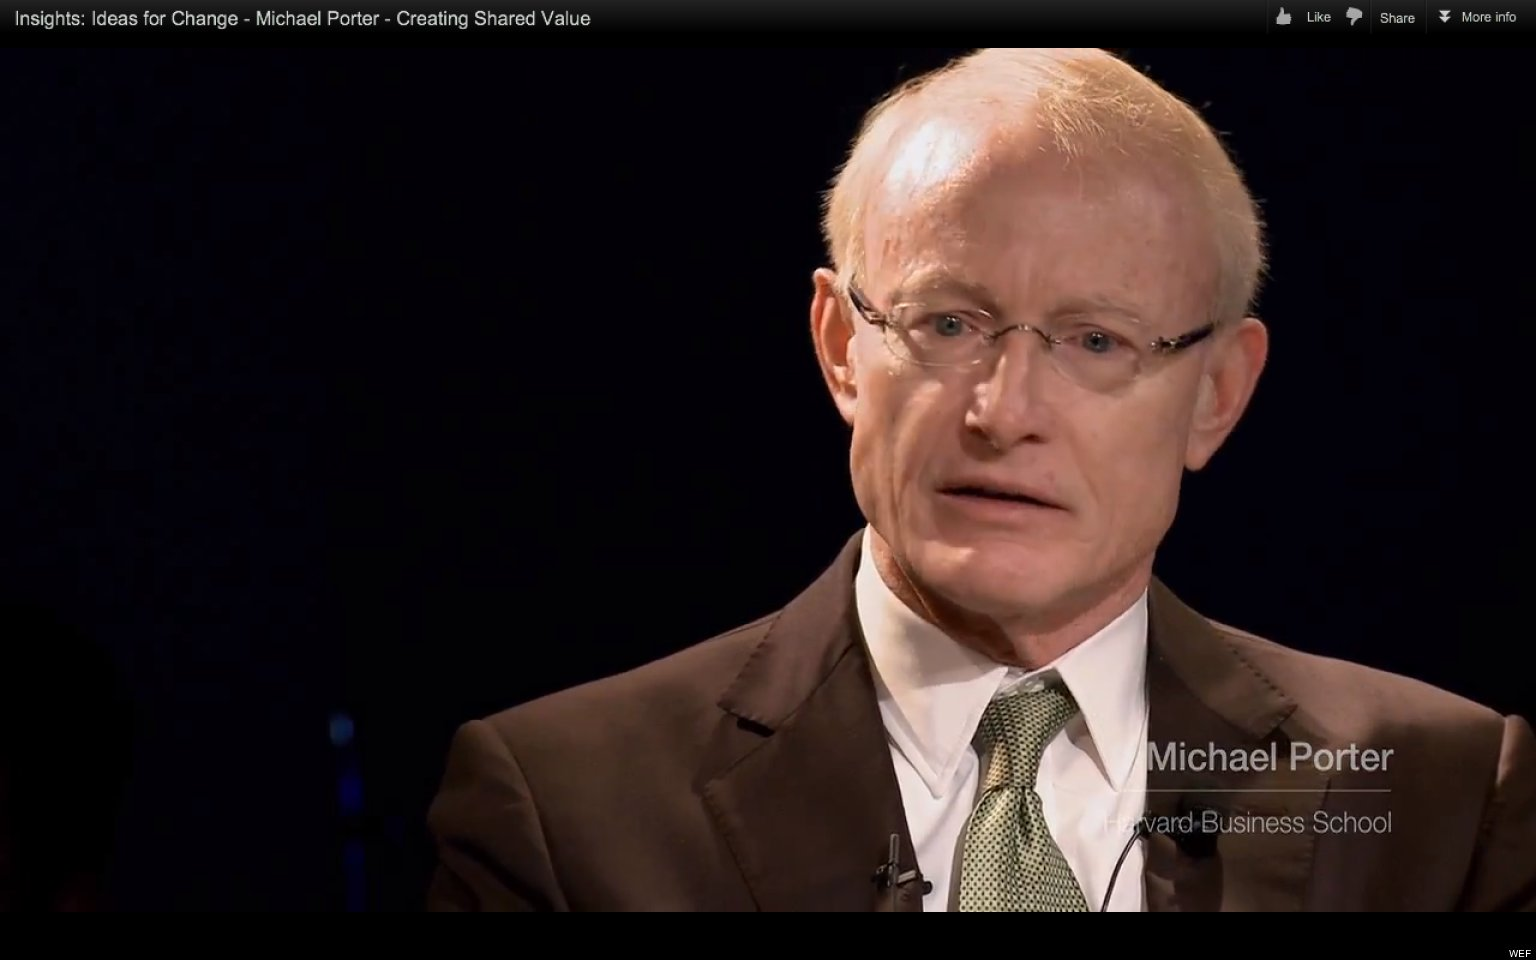 Le Meilleur Michael Porter On Creating Shared Value Video Huffpost Ce Mois Ci